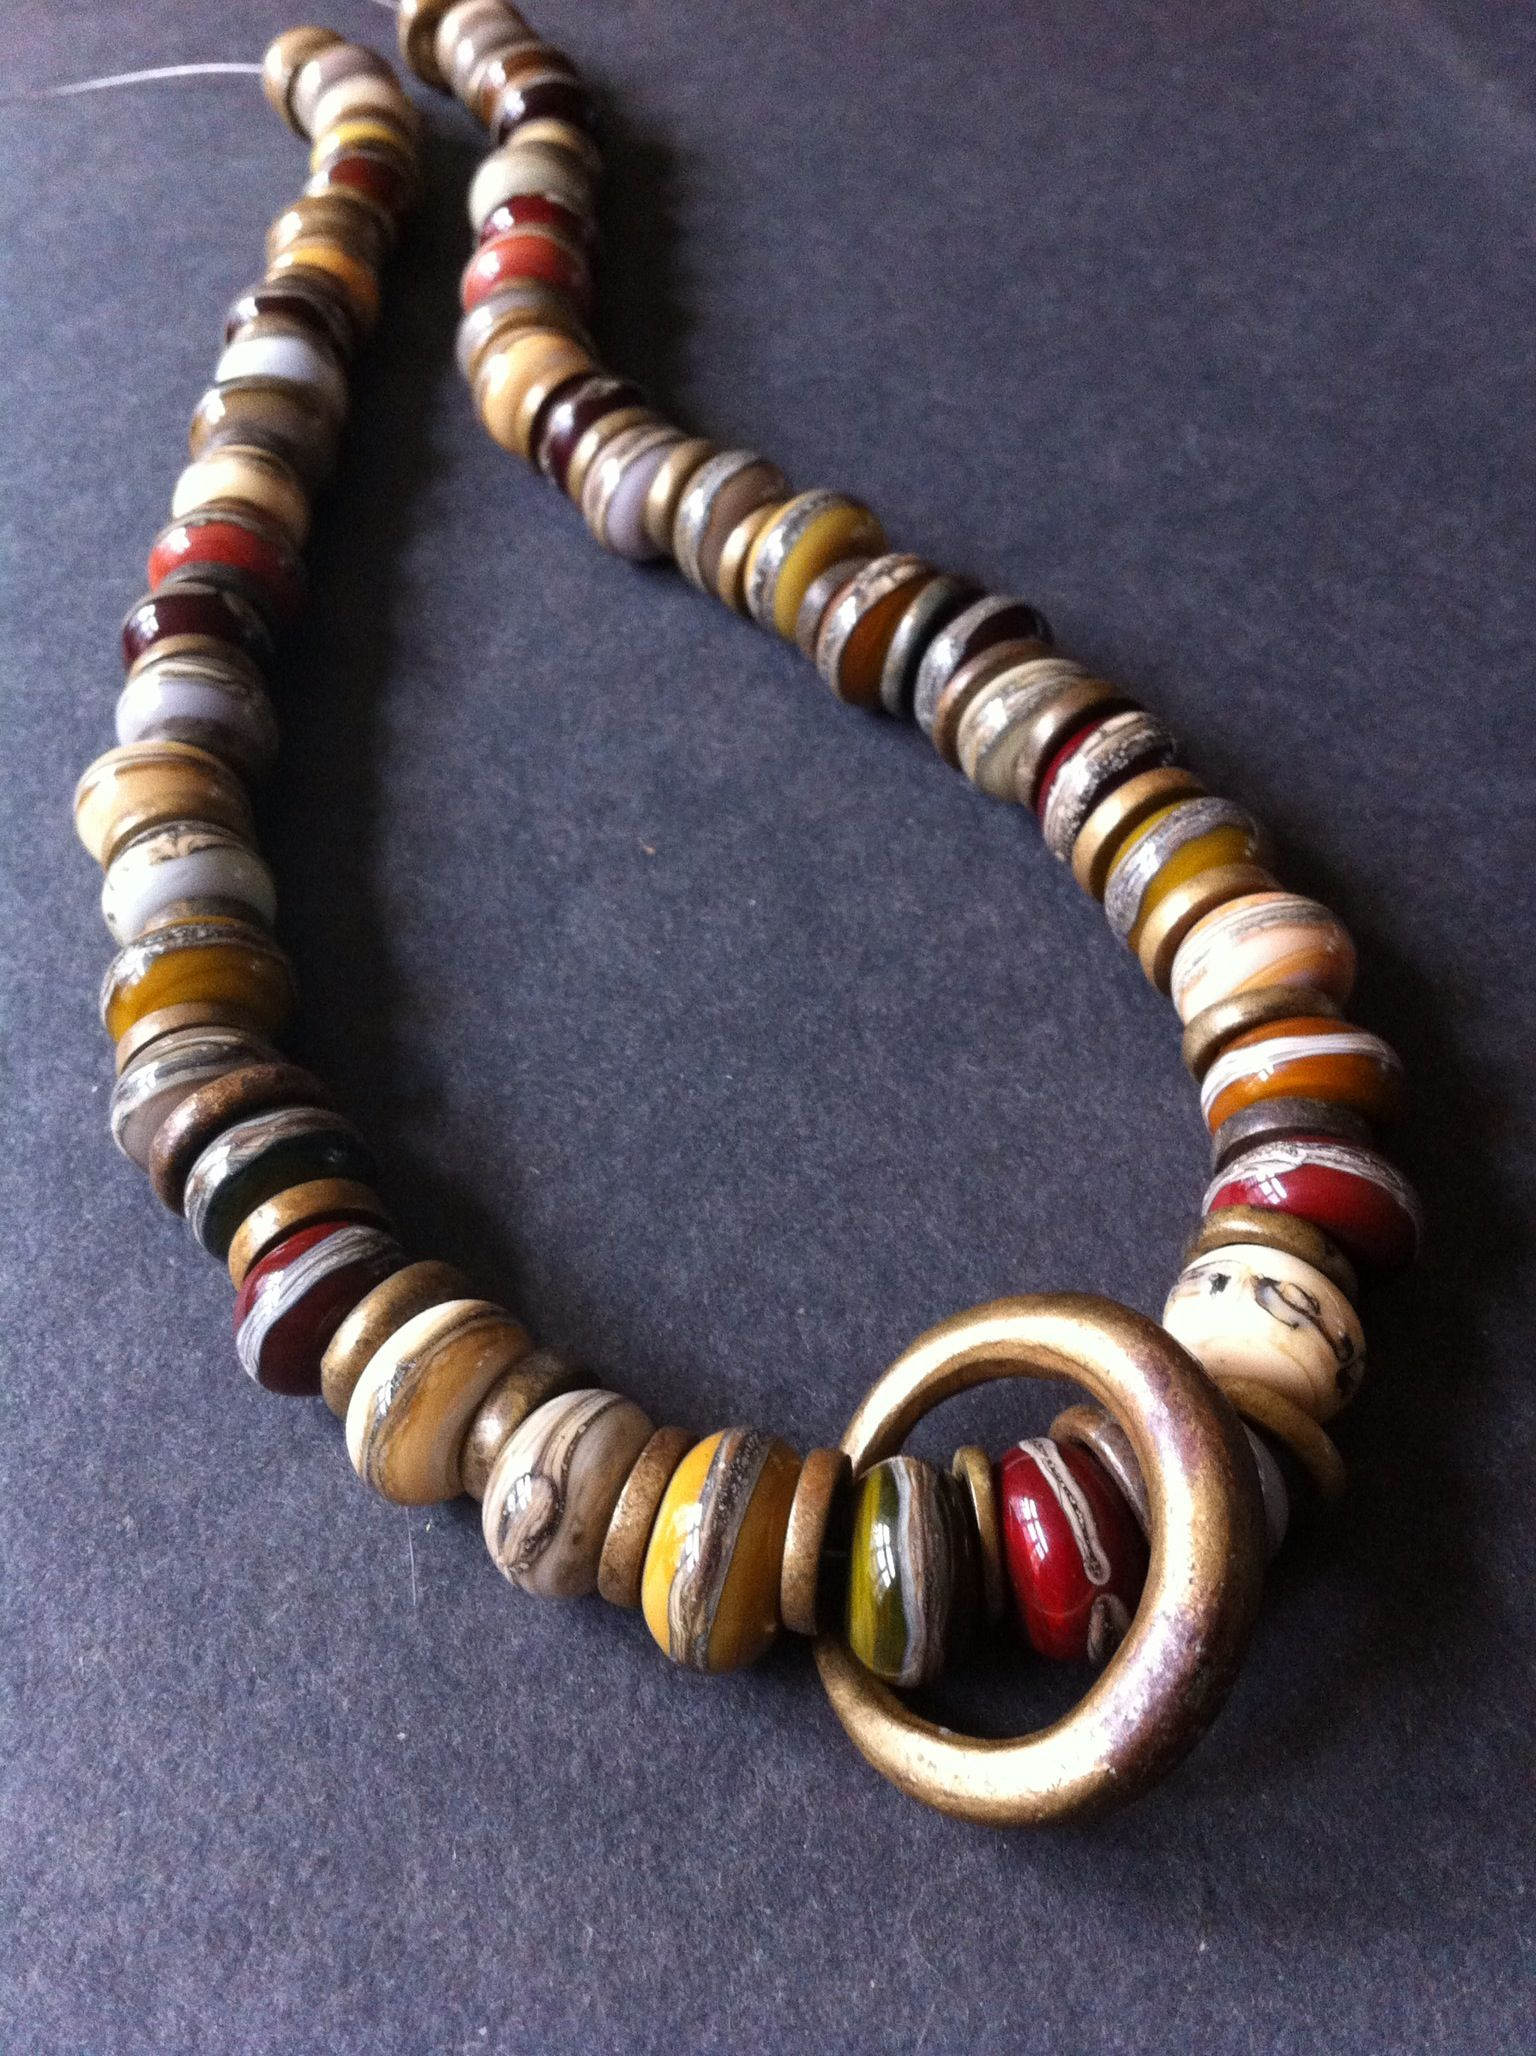 Brown, grey, maroon beads combined with old African brass rings